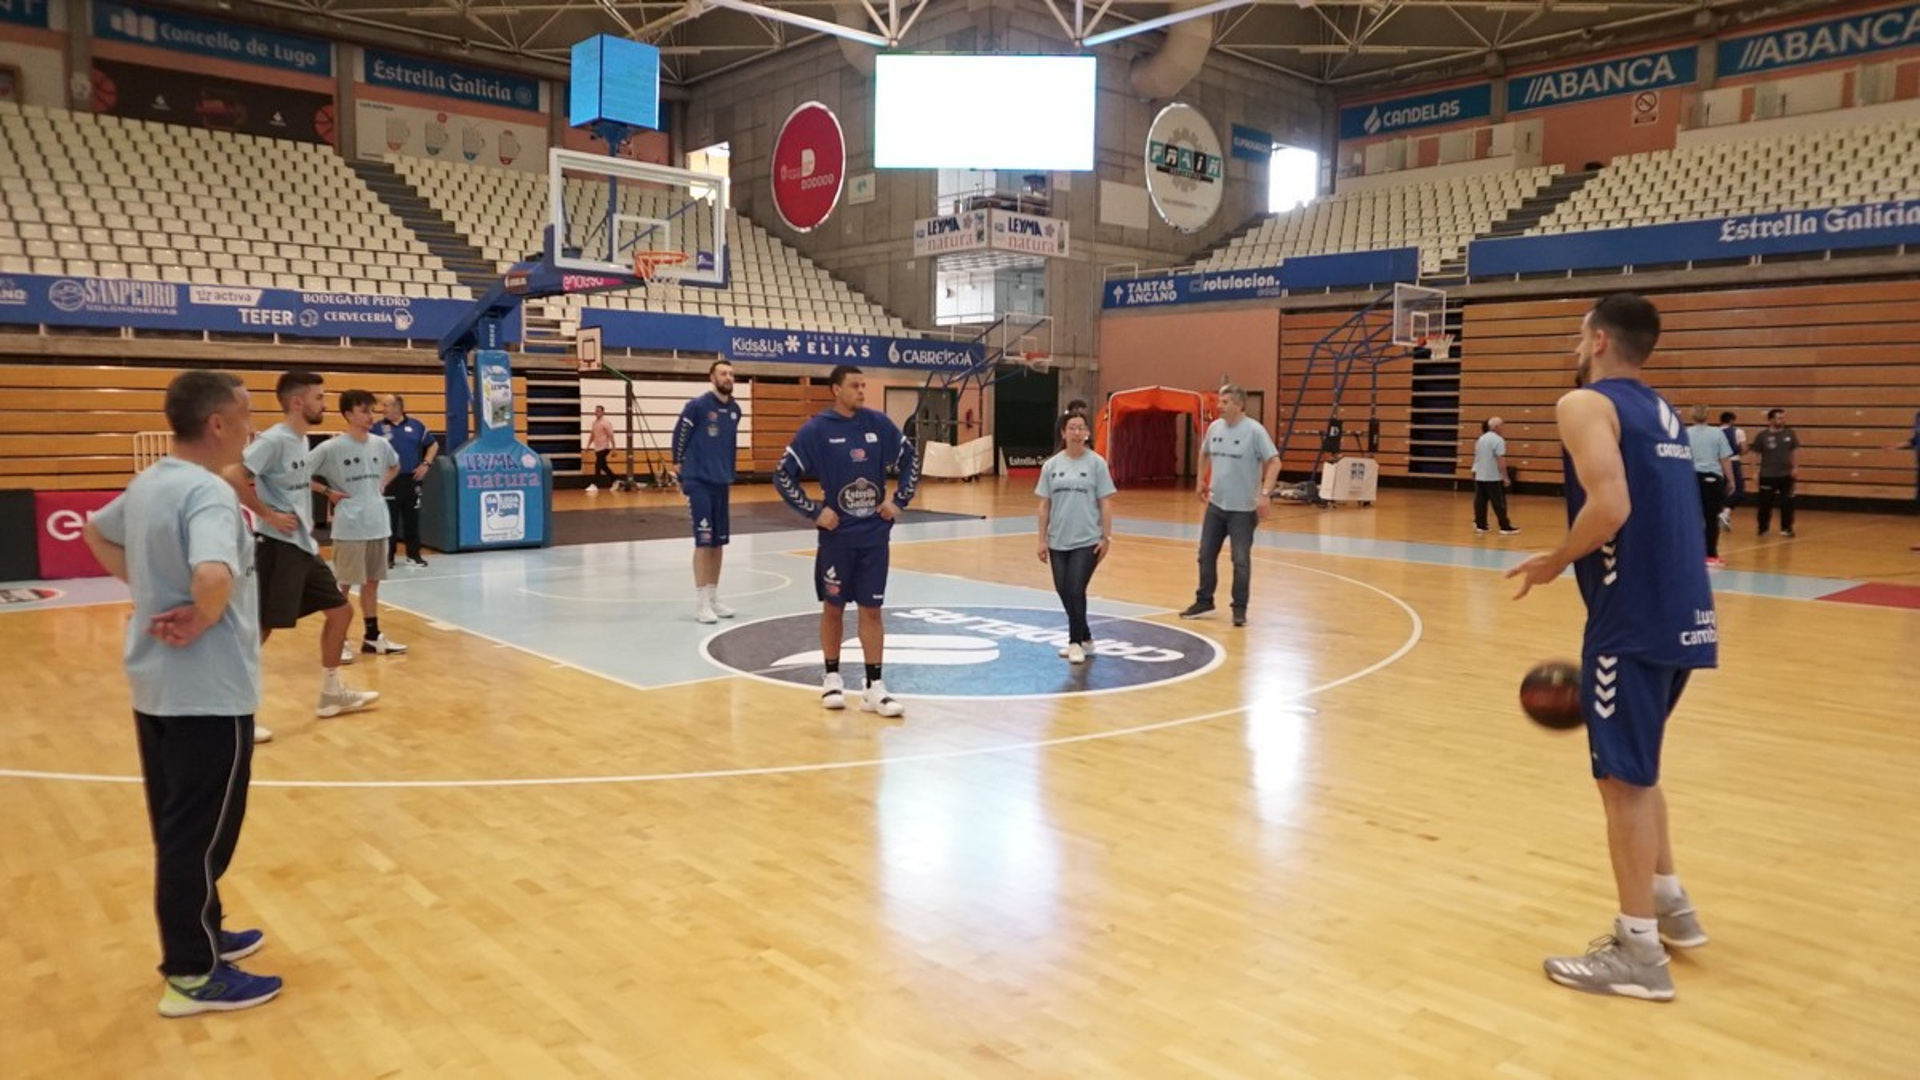 FOTOS DE LA PROAM DEL 30 DE ABRIL DE 2019 1920